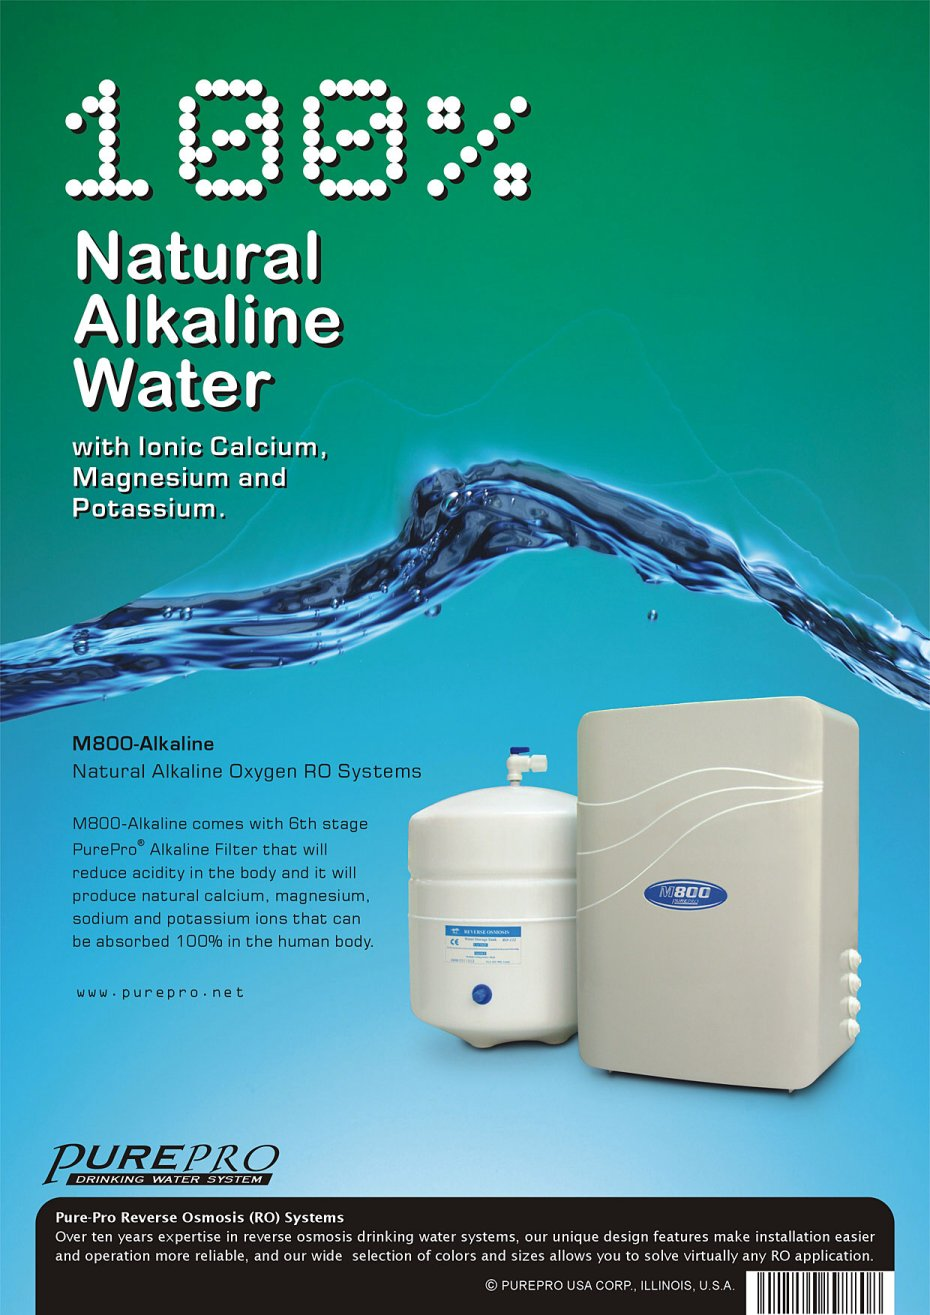 Purepro Reverse Osmosis Water Filter Systems Us Manufacturer Process Flow Diagram Plant Images M800 Alkaline1 Dm L